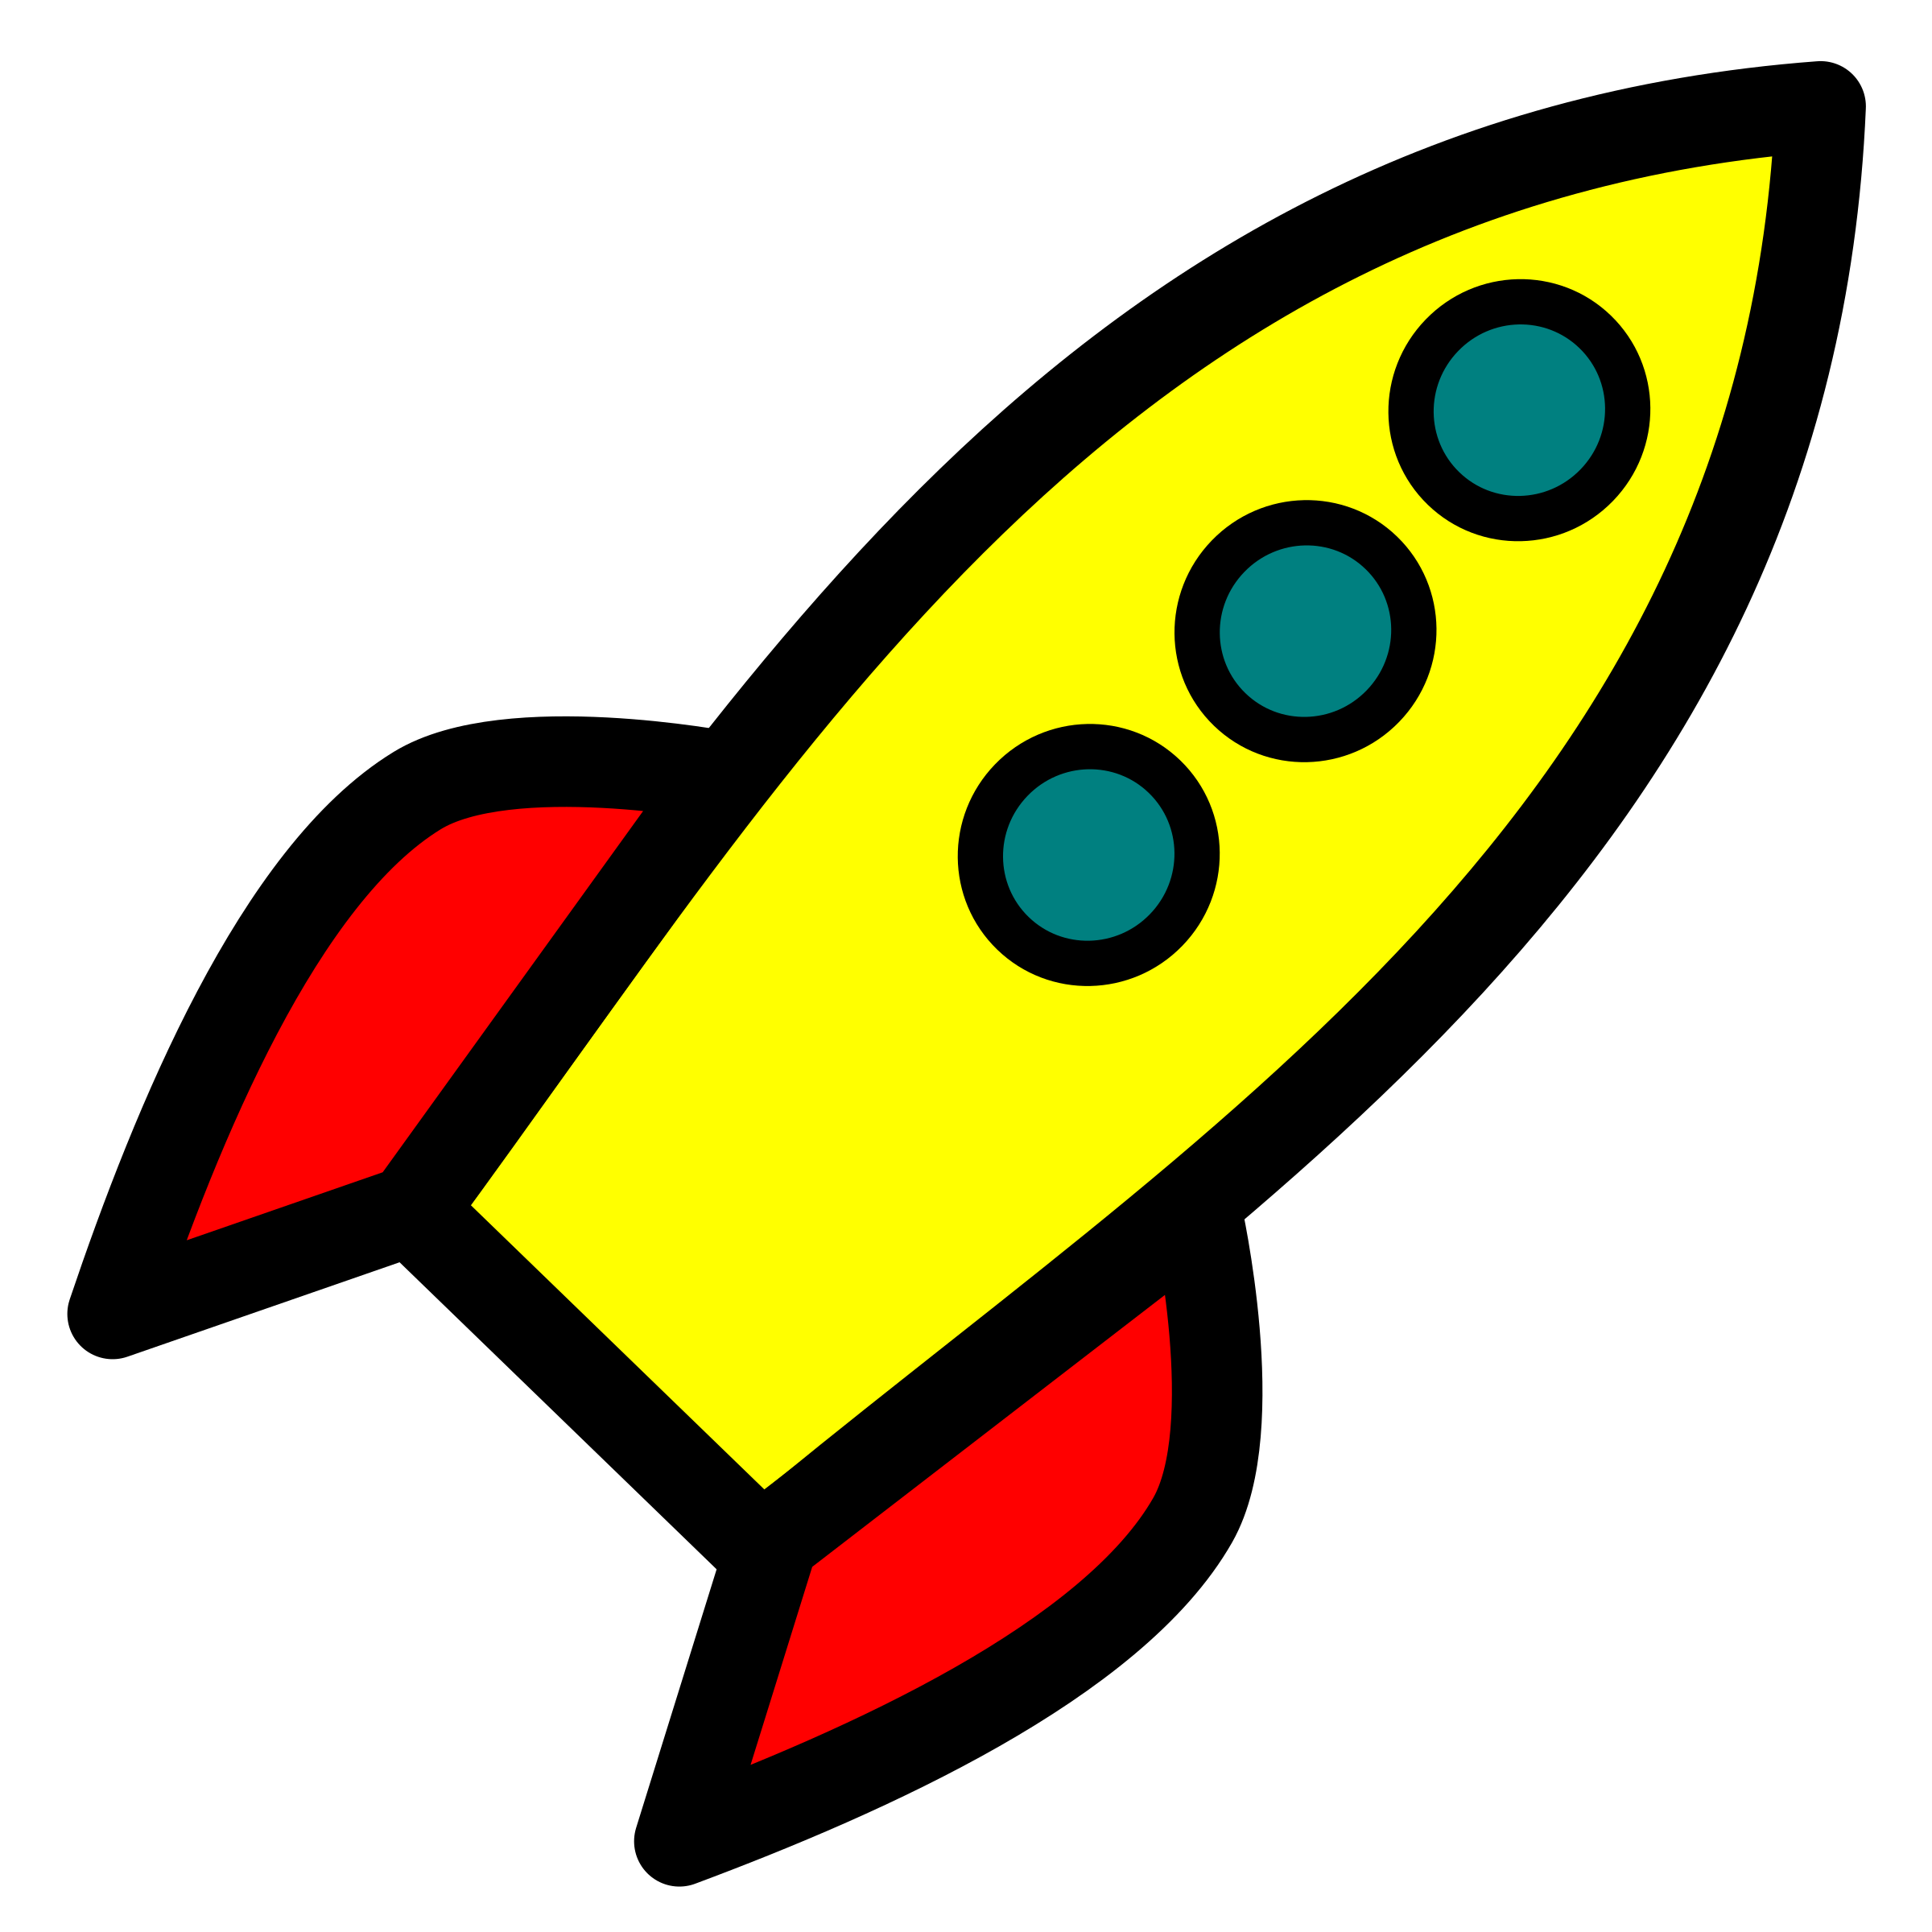 Rocket icon by pitr